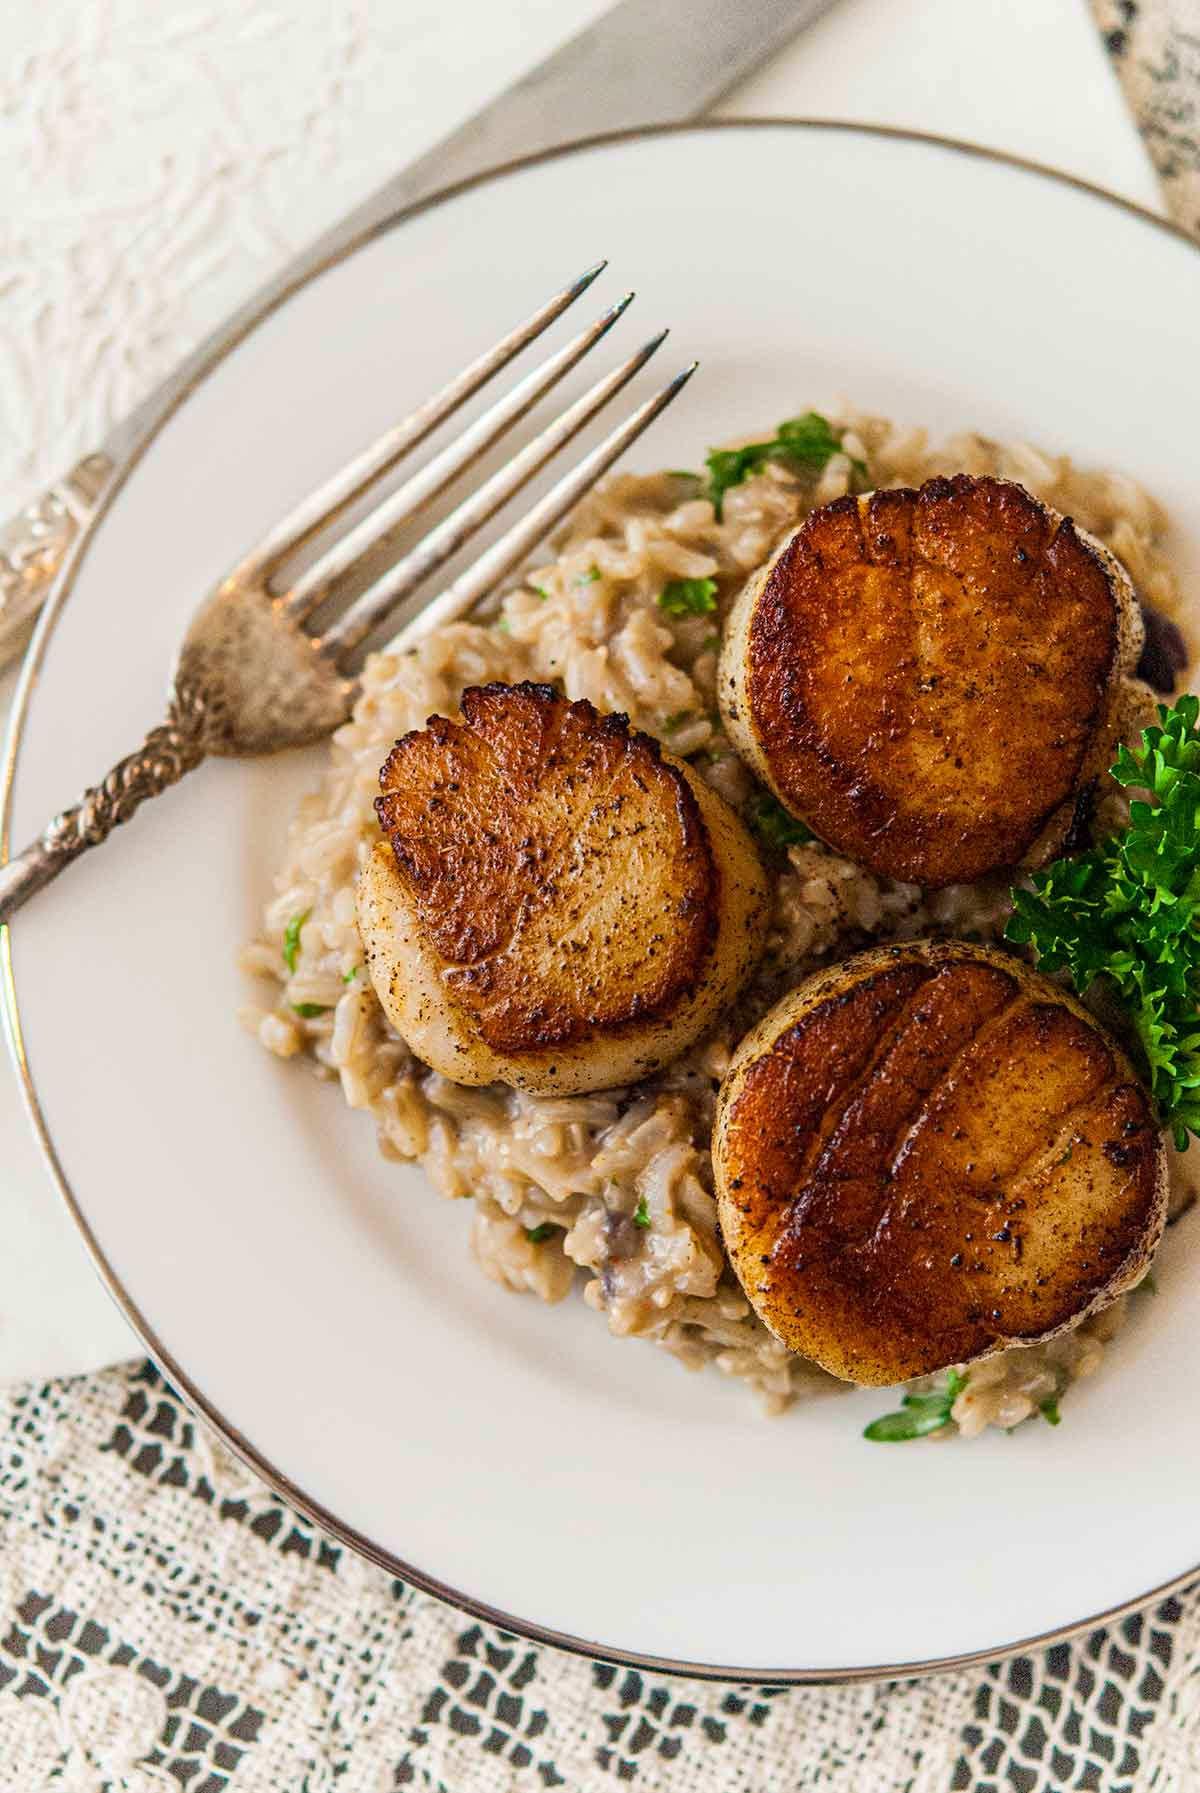 3 seared scallops on top of creamy rice, garnished with a sprig of parsley, on a place beside an antique fork.